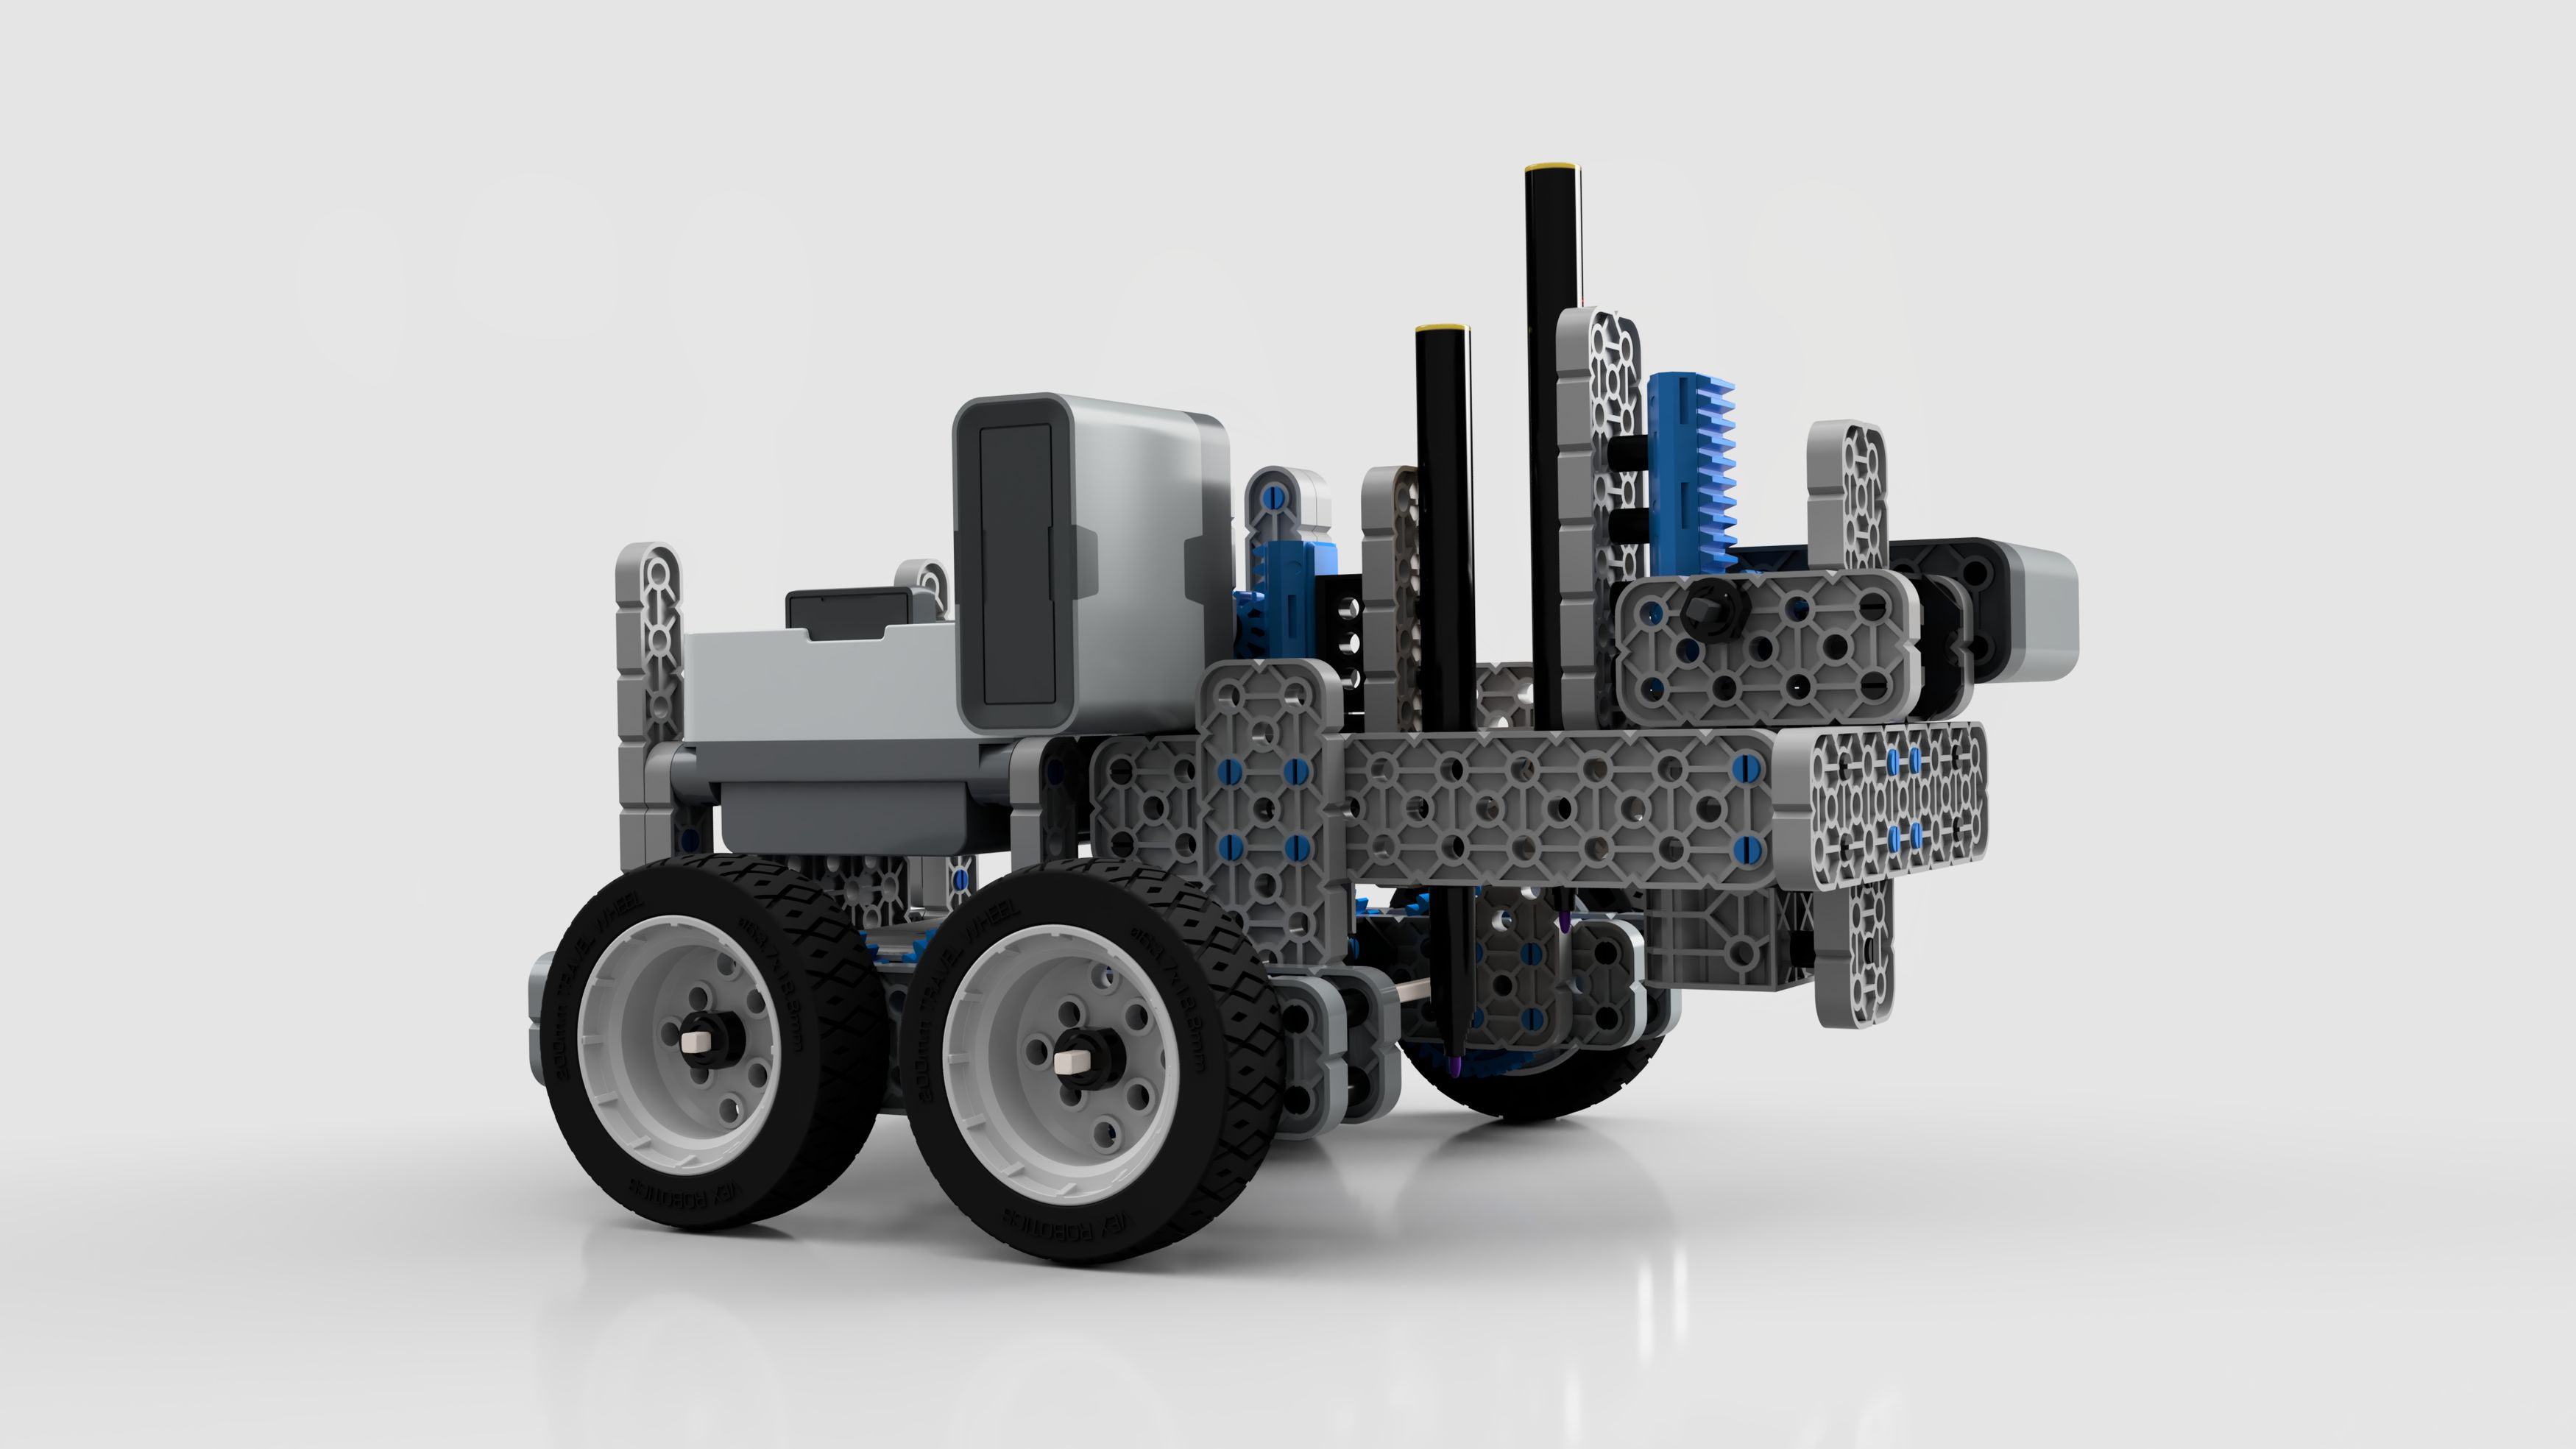 Vex-iq-robot-caneta-2020-may-24-06-00-12pm-000-customizedview12868909940-png-3500-3500